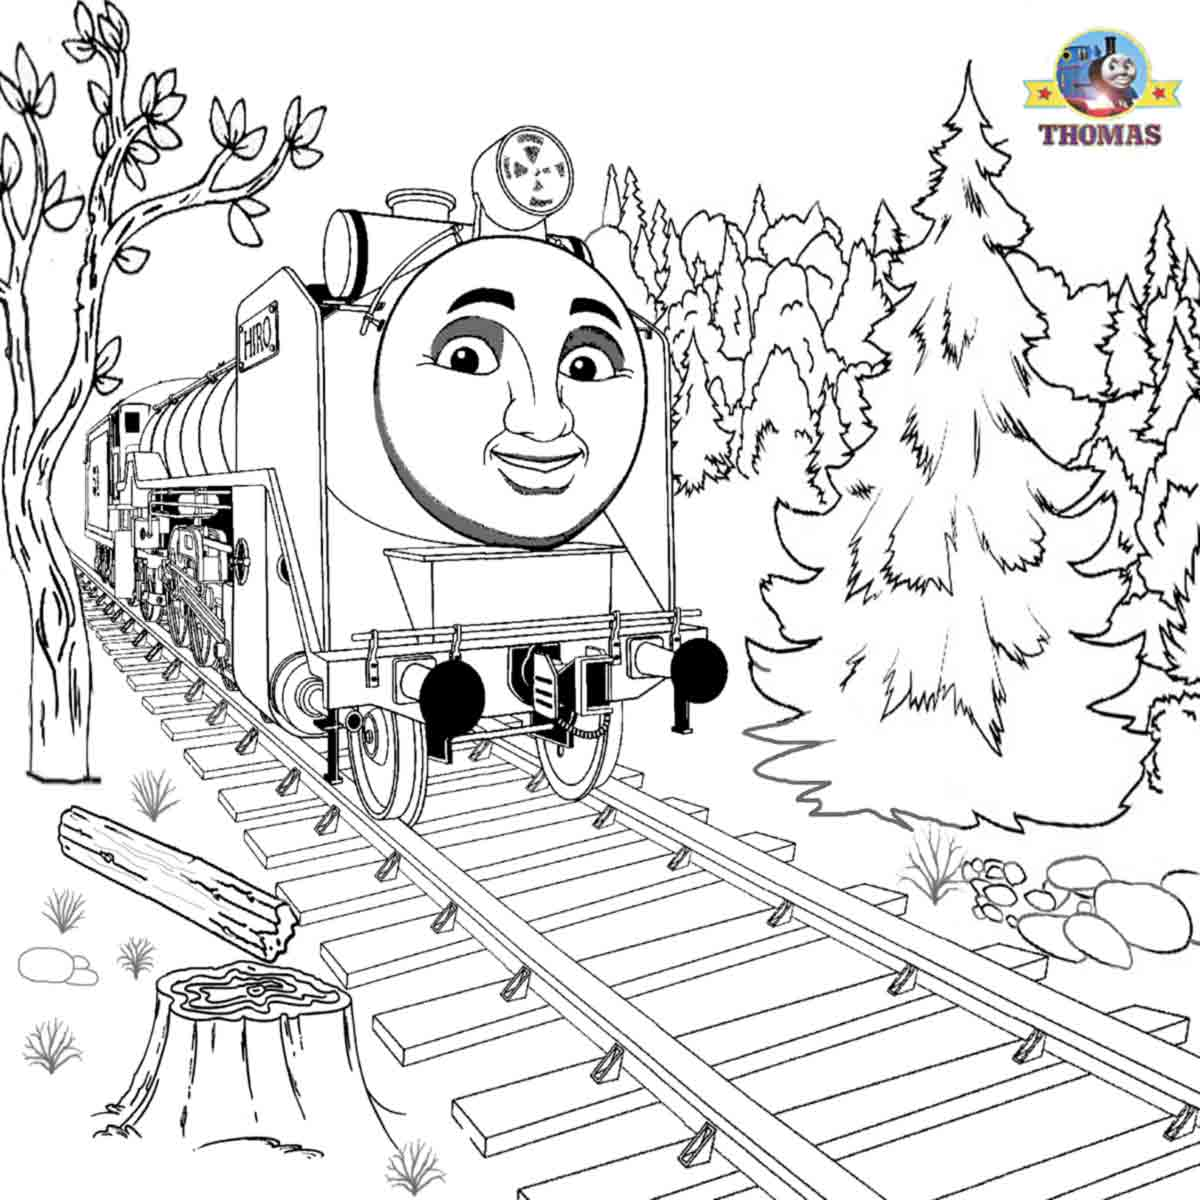 Thomas the train coloring sheets printable - Fun Railroad Transport Clip Art Free Cartoons For Boys Thomas Hiro Coloring Book Printables To Color